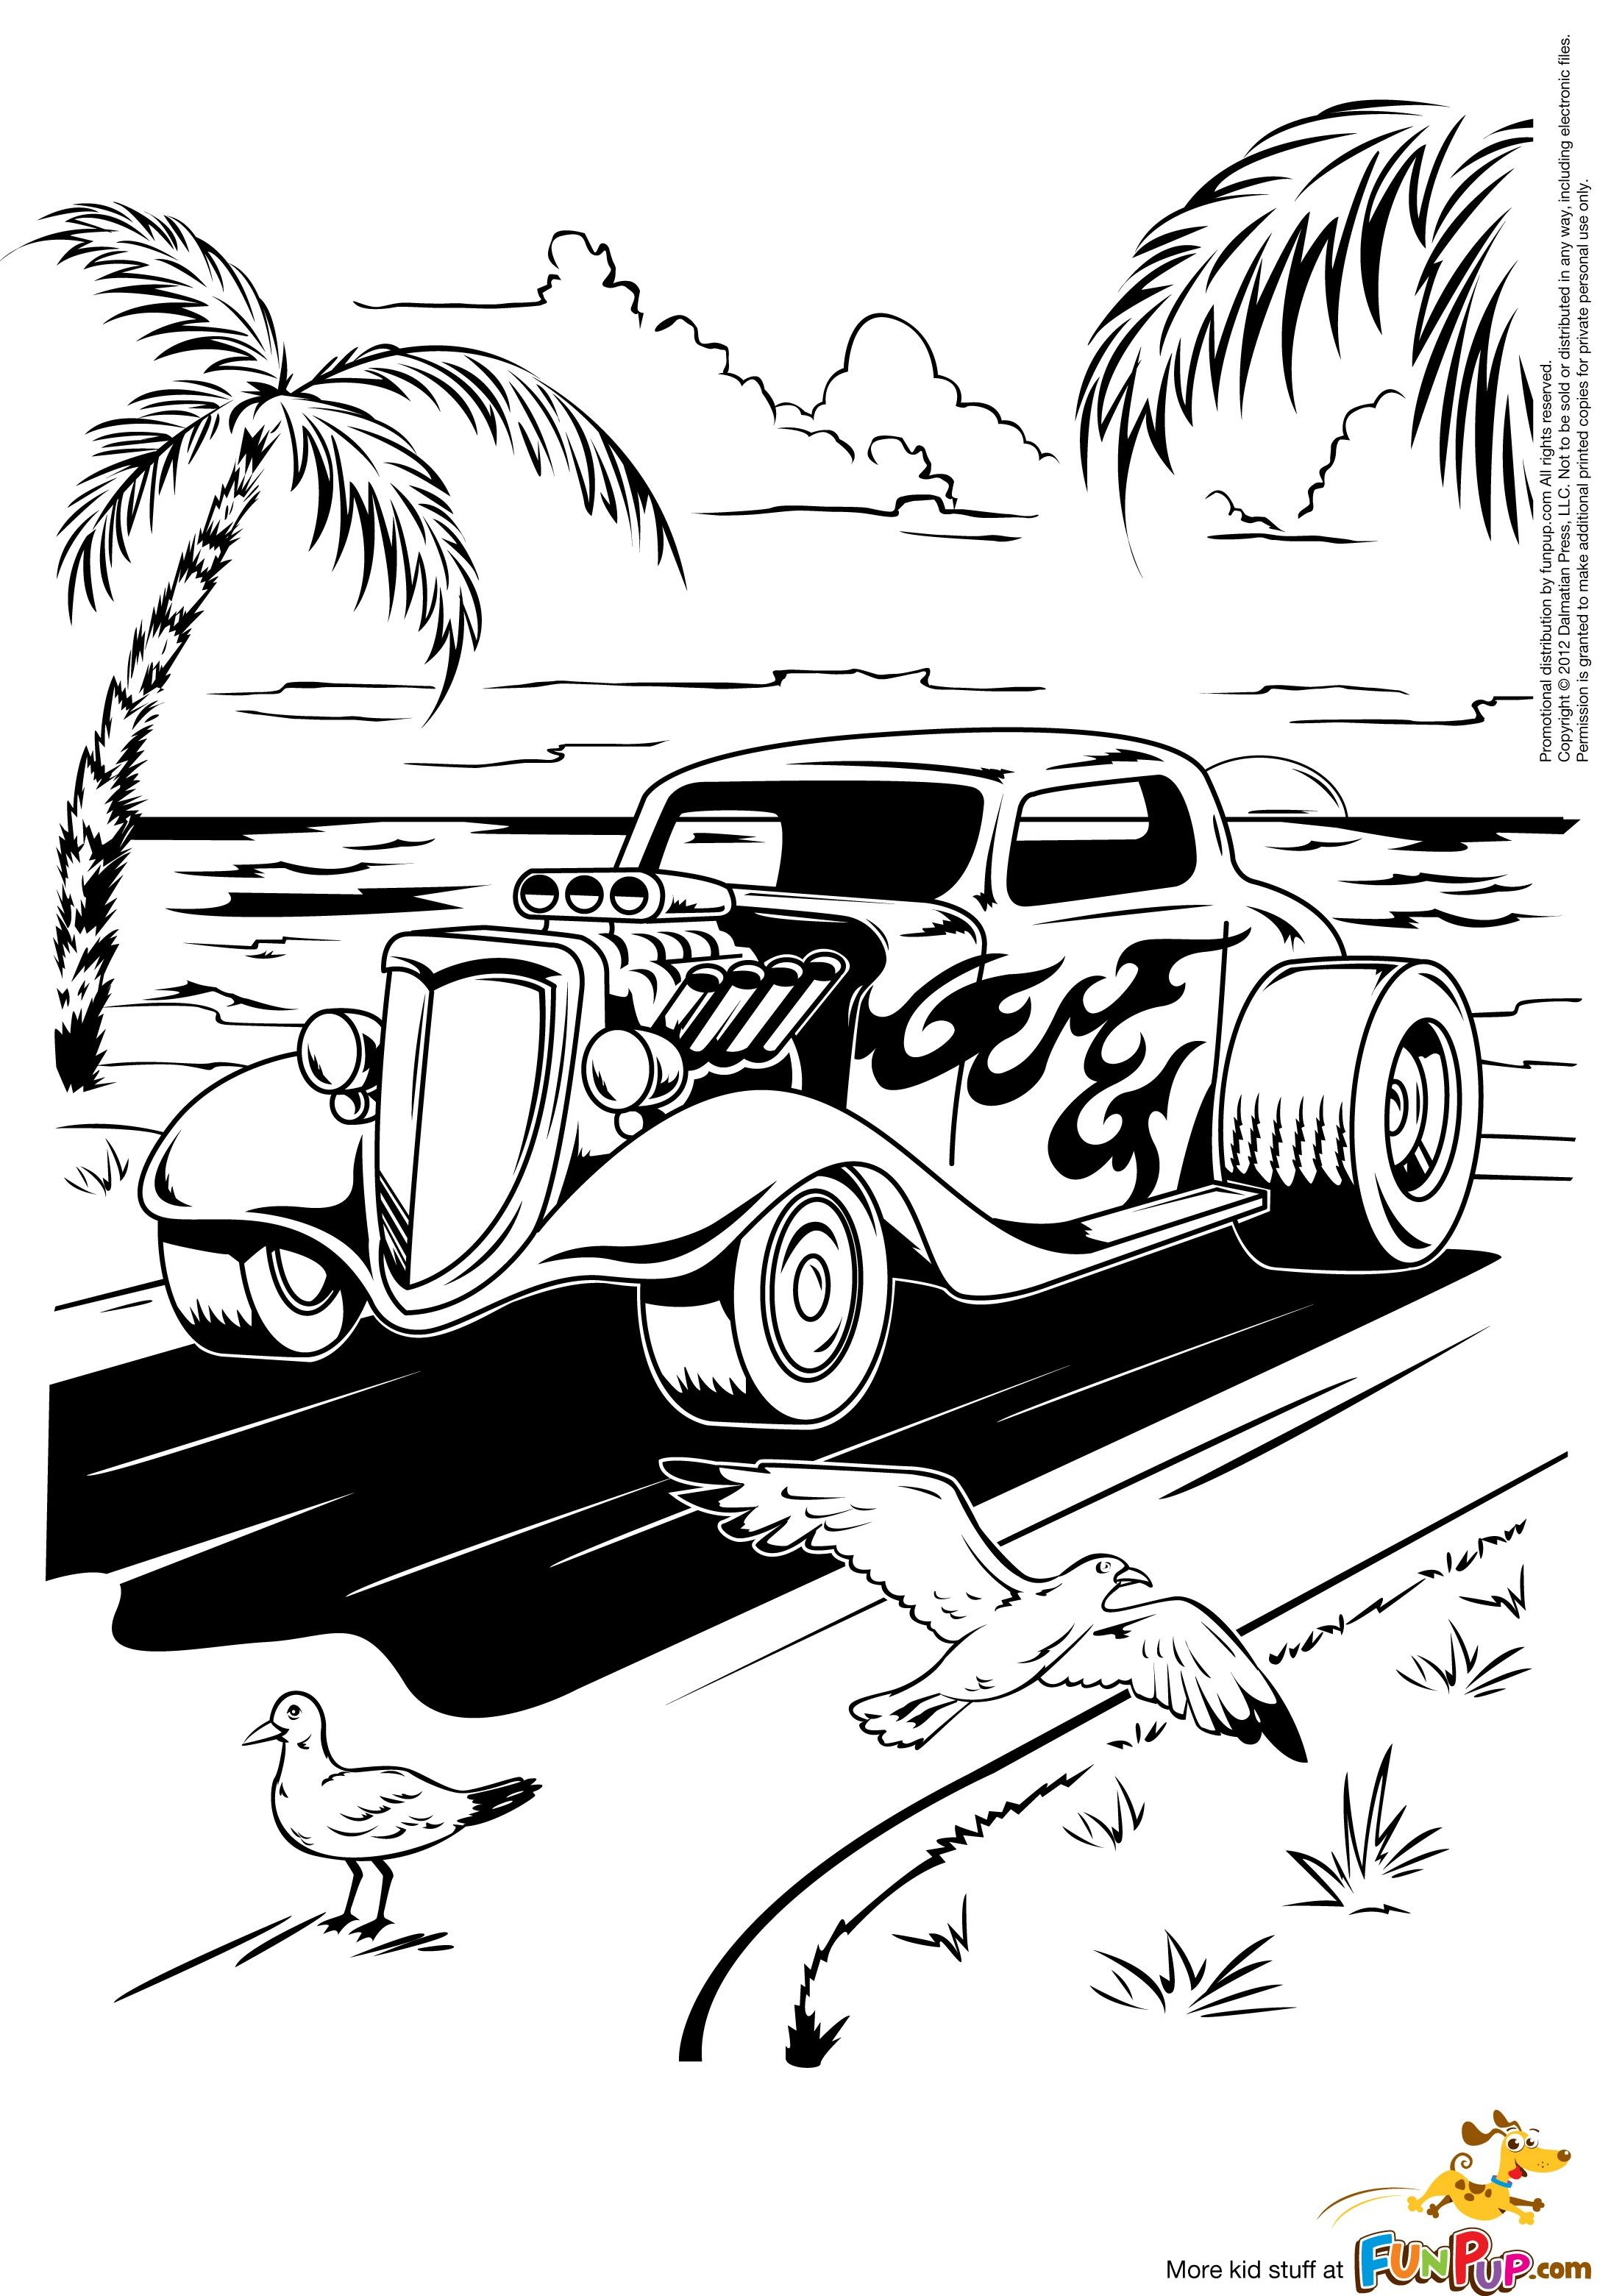 hot rod coloring sheets hot rod coloring pages to print download free coloring rod sheets coloring hot 1 1